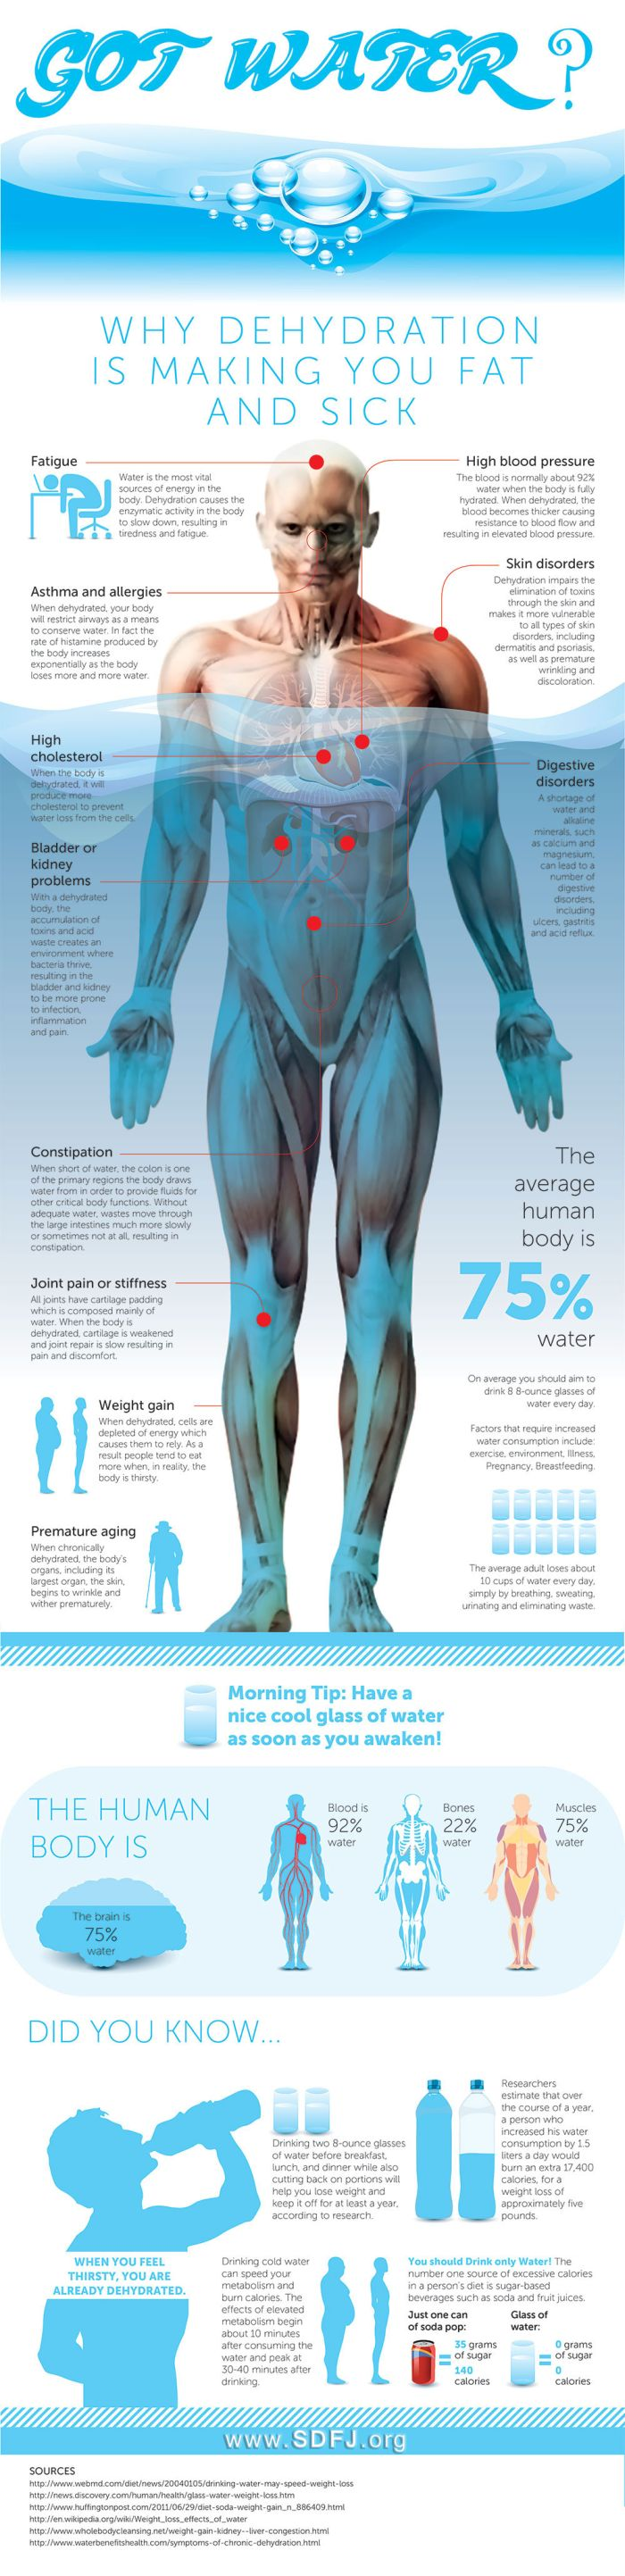 Why Dehydration Is Making You Fat And Sick (infographic)